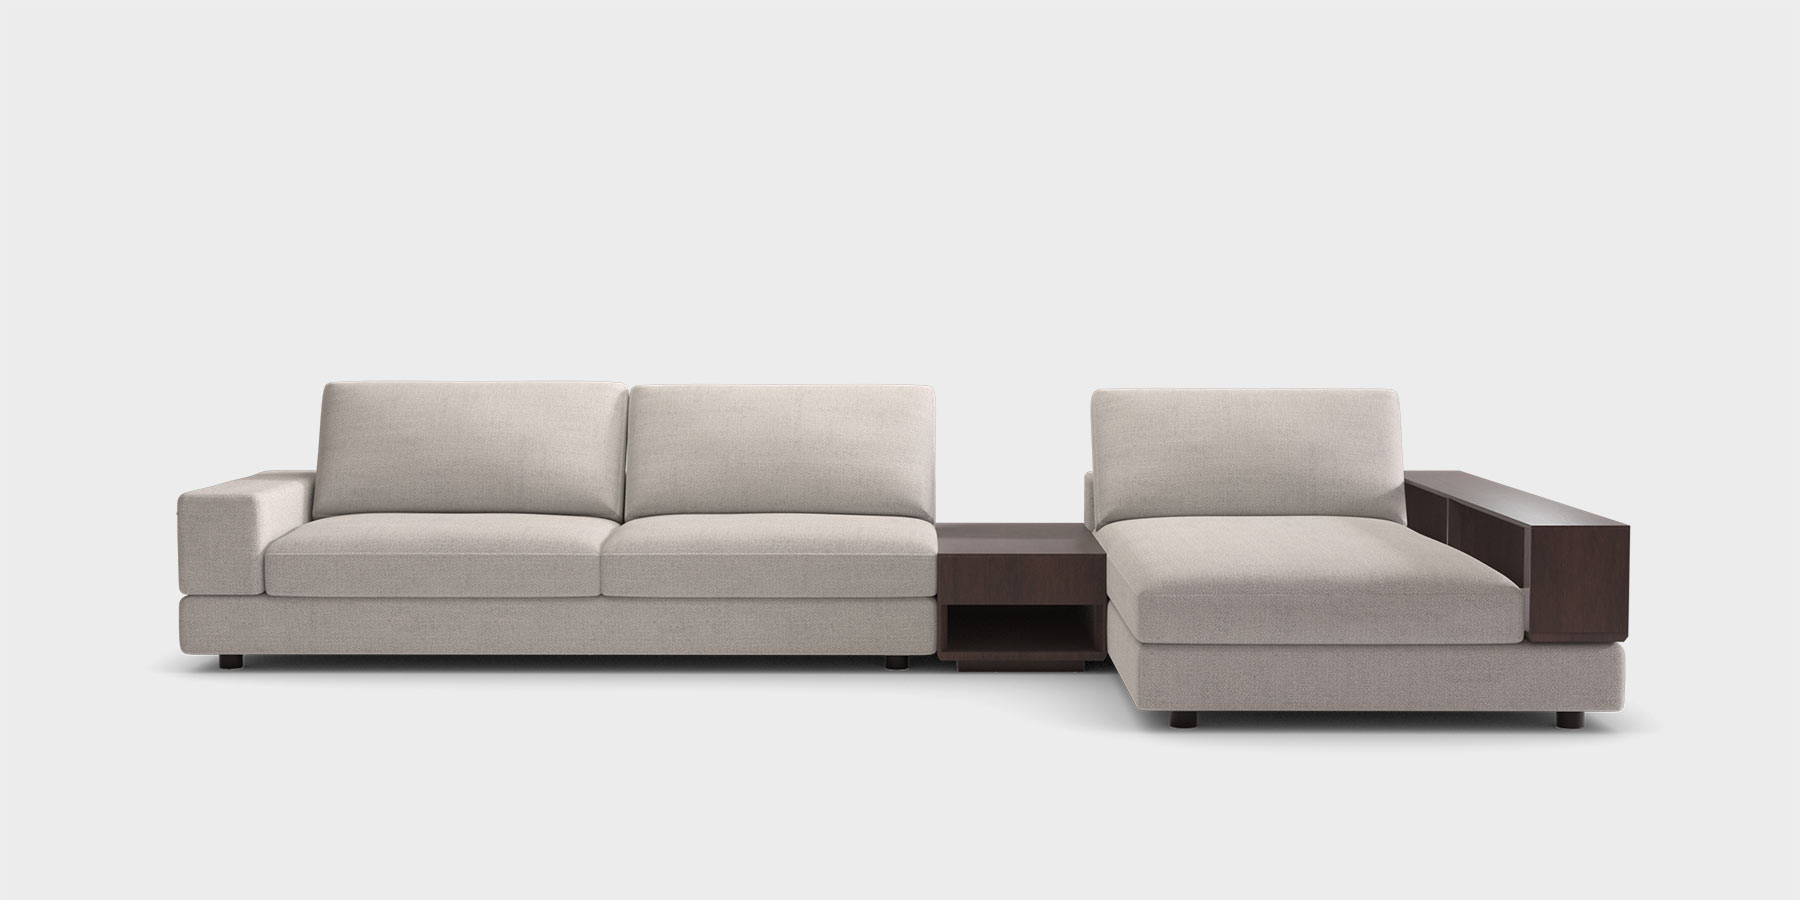 Sofa Accessories Online India Jasper Modular Sofa Award Winning Design Modular Lounge